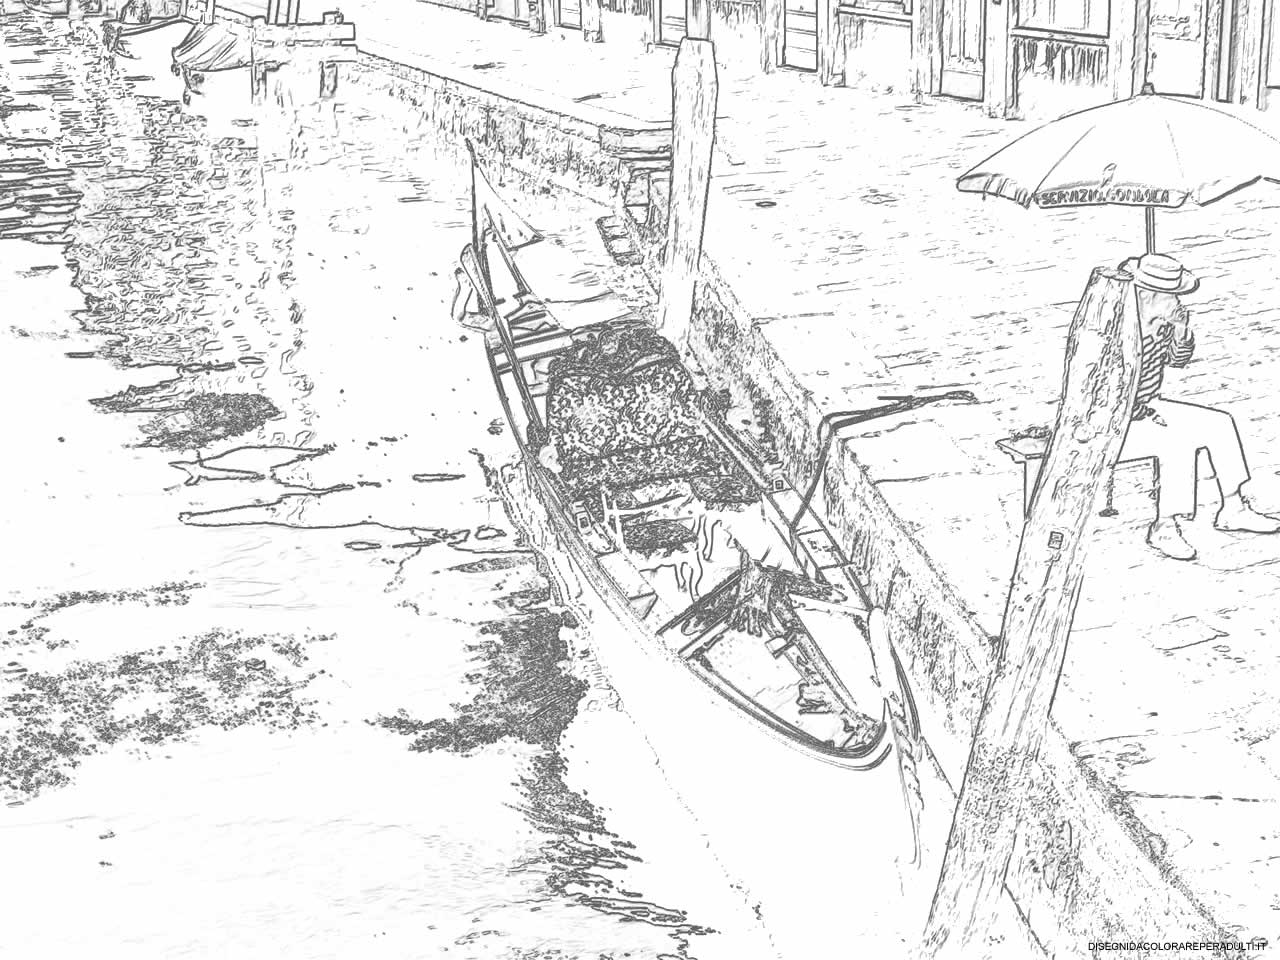 1280x960 This Is A Drawing By Coloring Of Venice Created By Real Photo